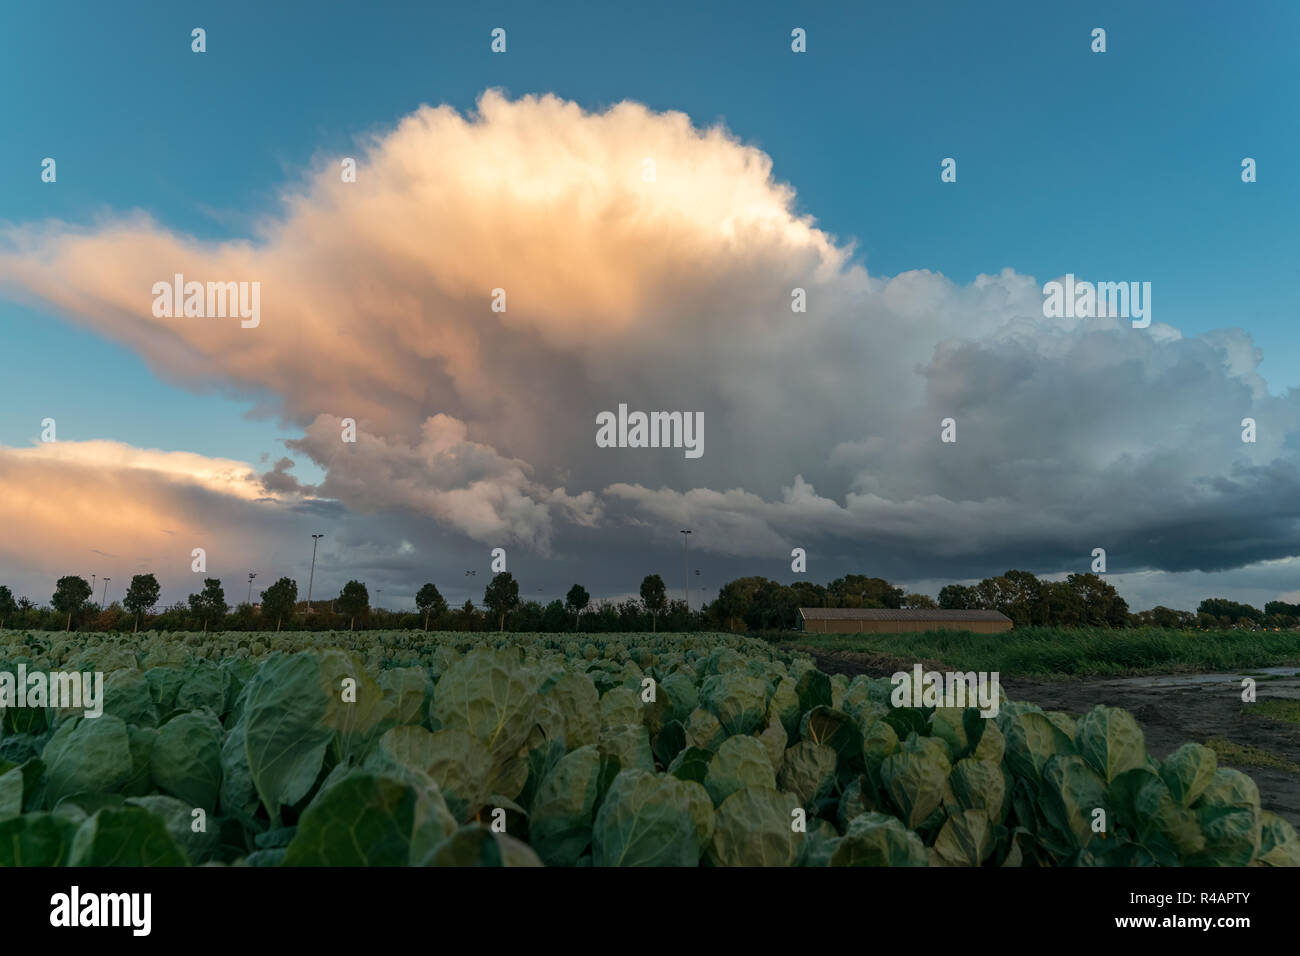 A thundery shower has a dramatic appearance against the blue sky as it is illuminated by the setting sun - Stock Image